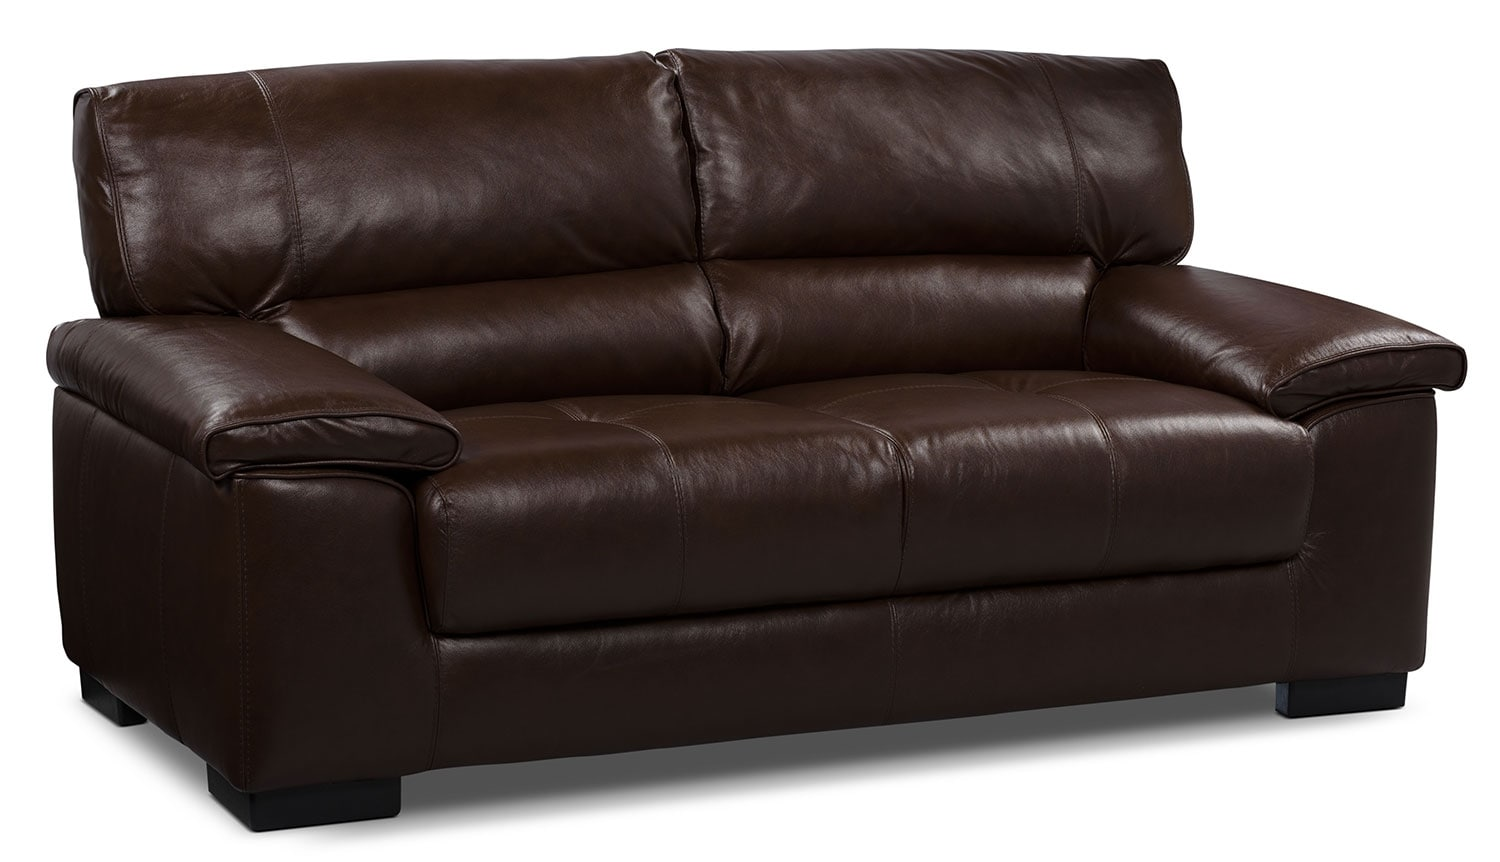 Chateau d Ax Genuine Leather Sofa Dark Brown